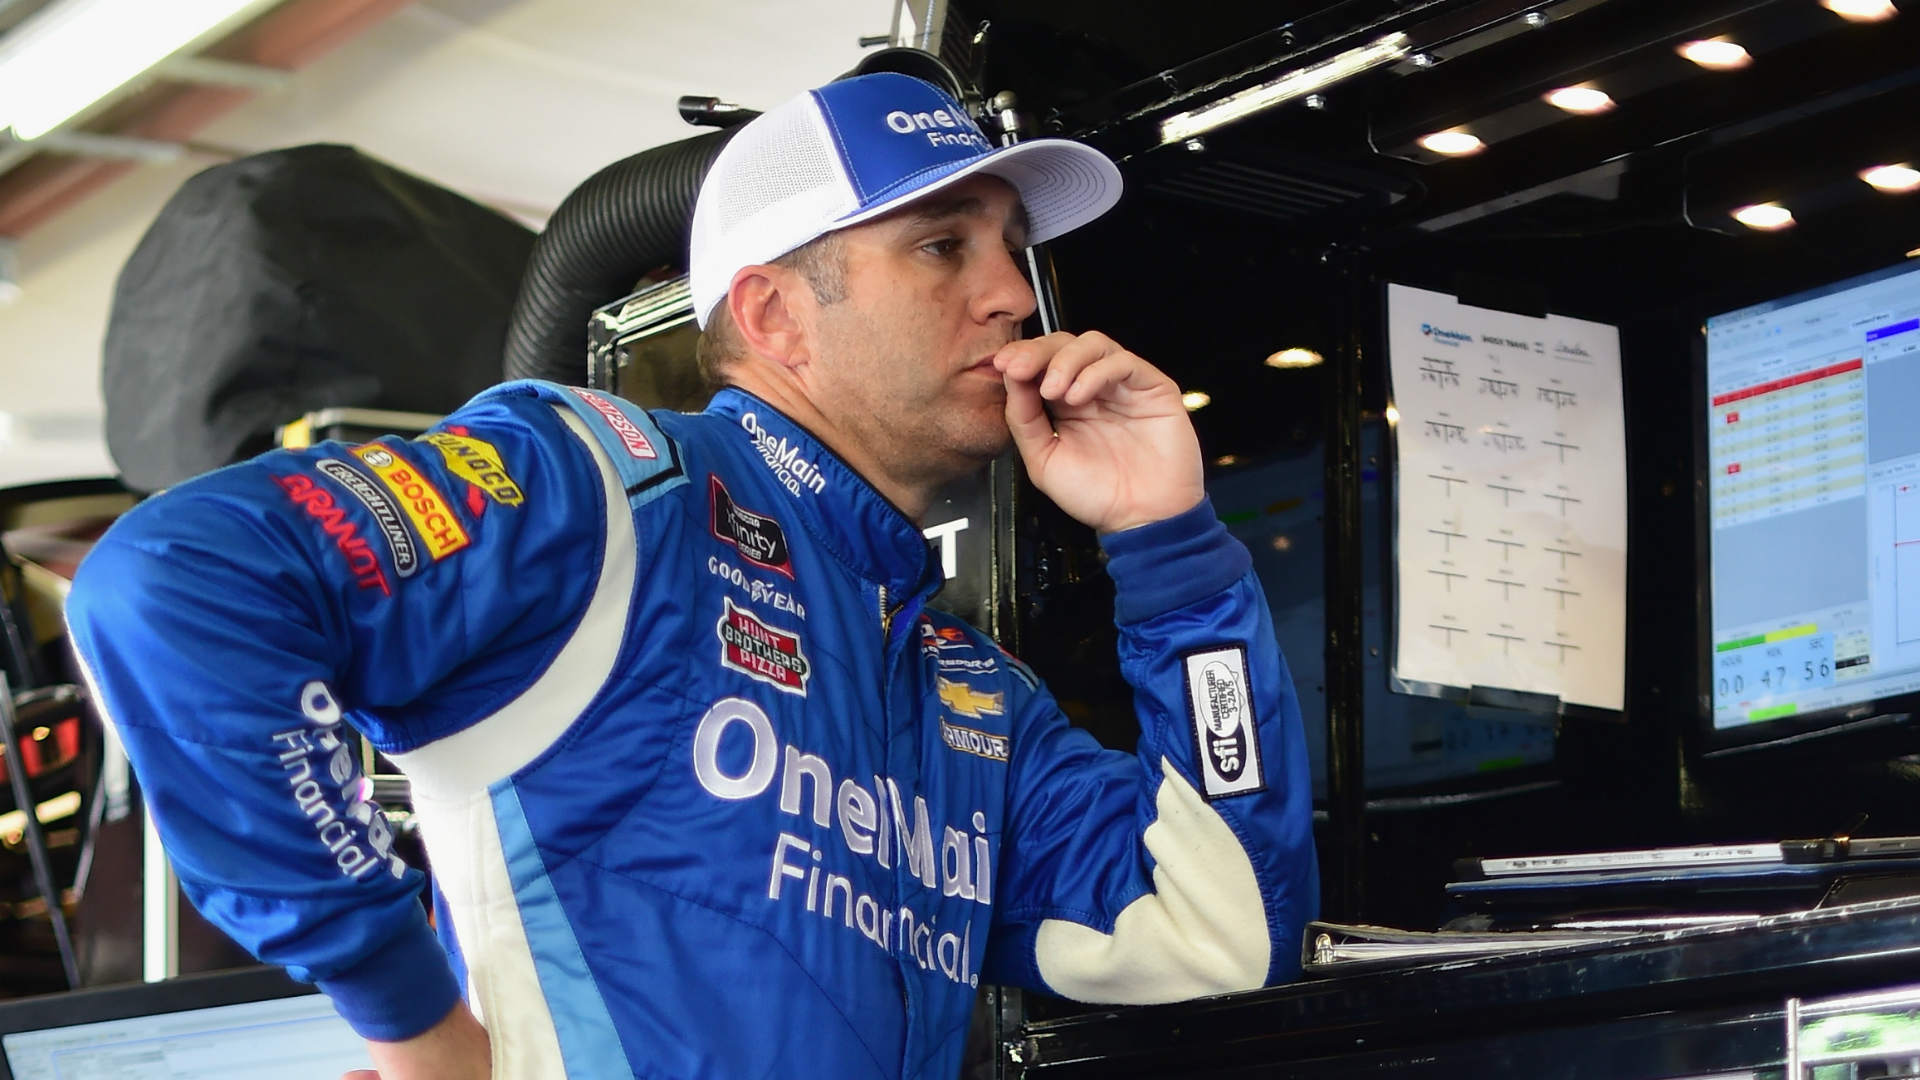 Kasey Kahne Announces Departure From NASCAR One Day After Elliott Sadler